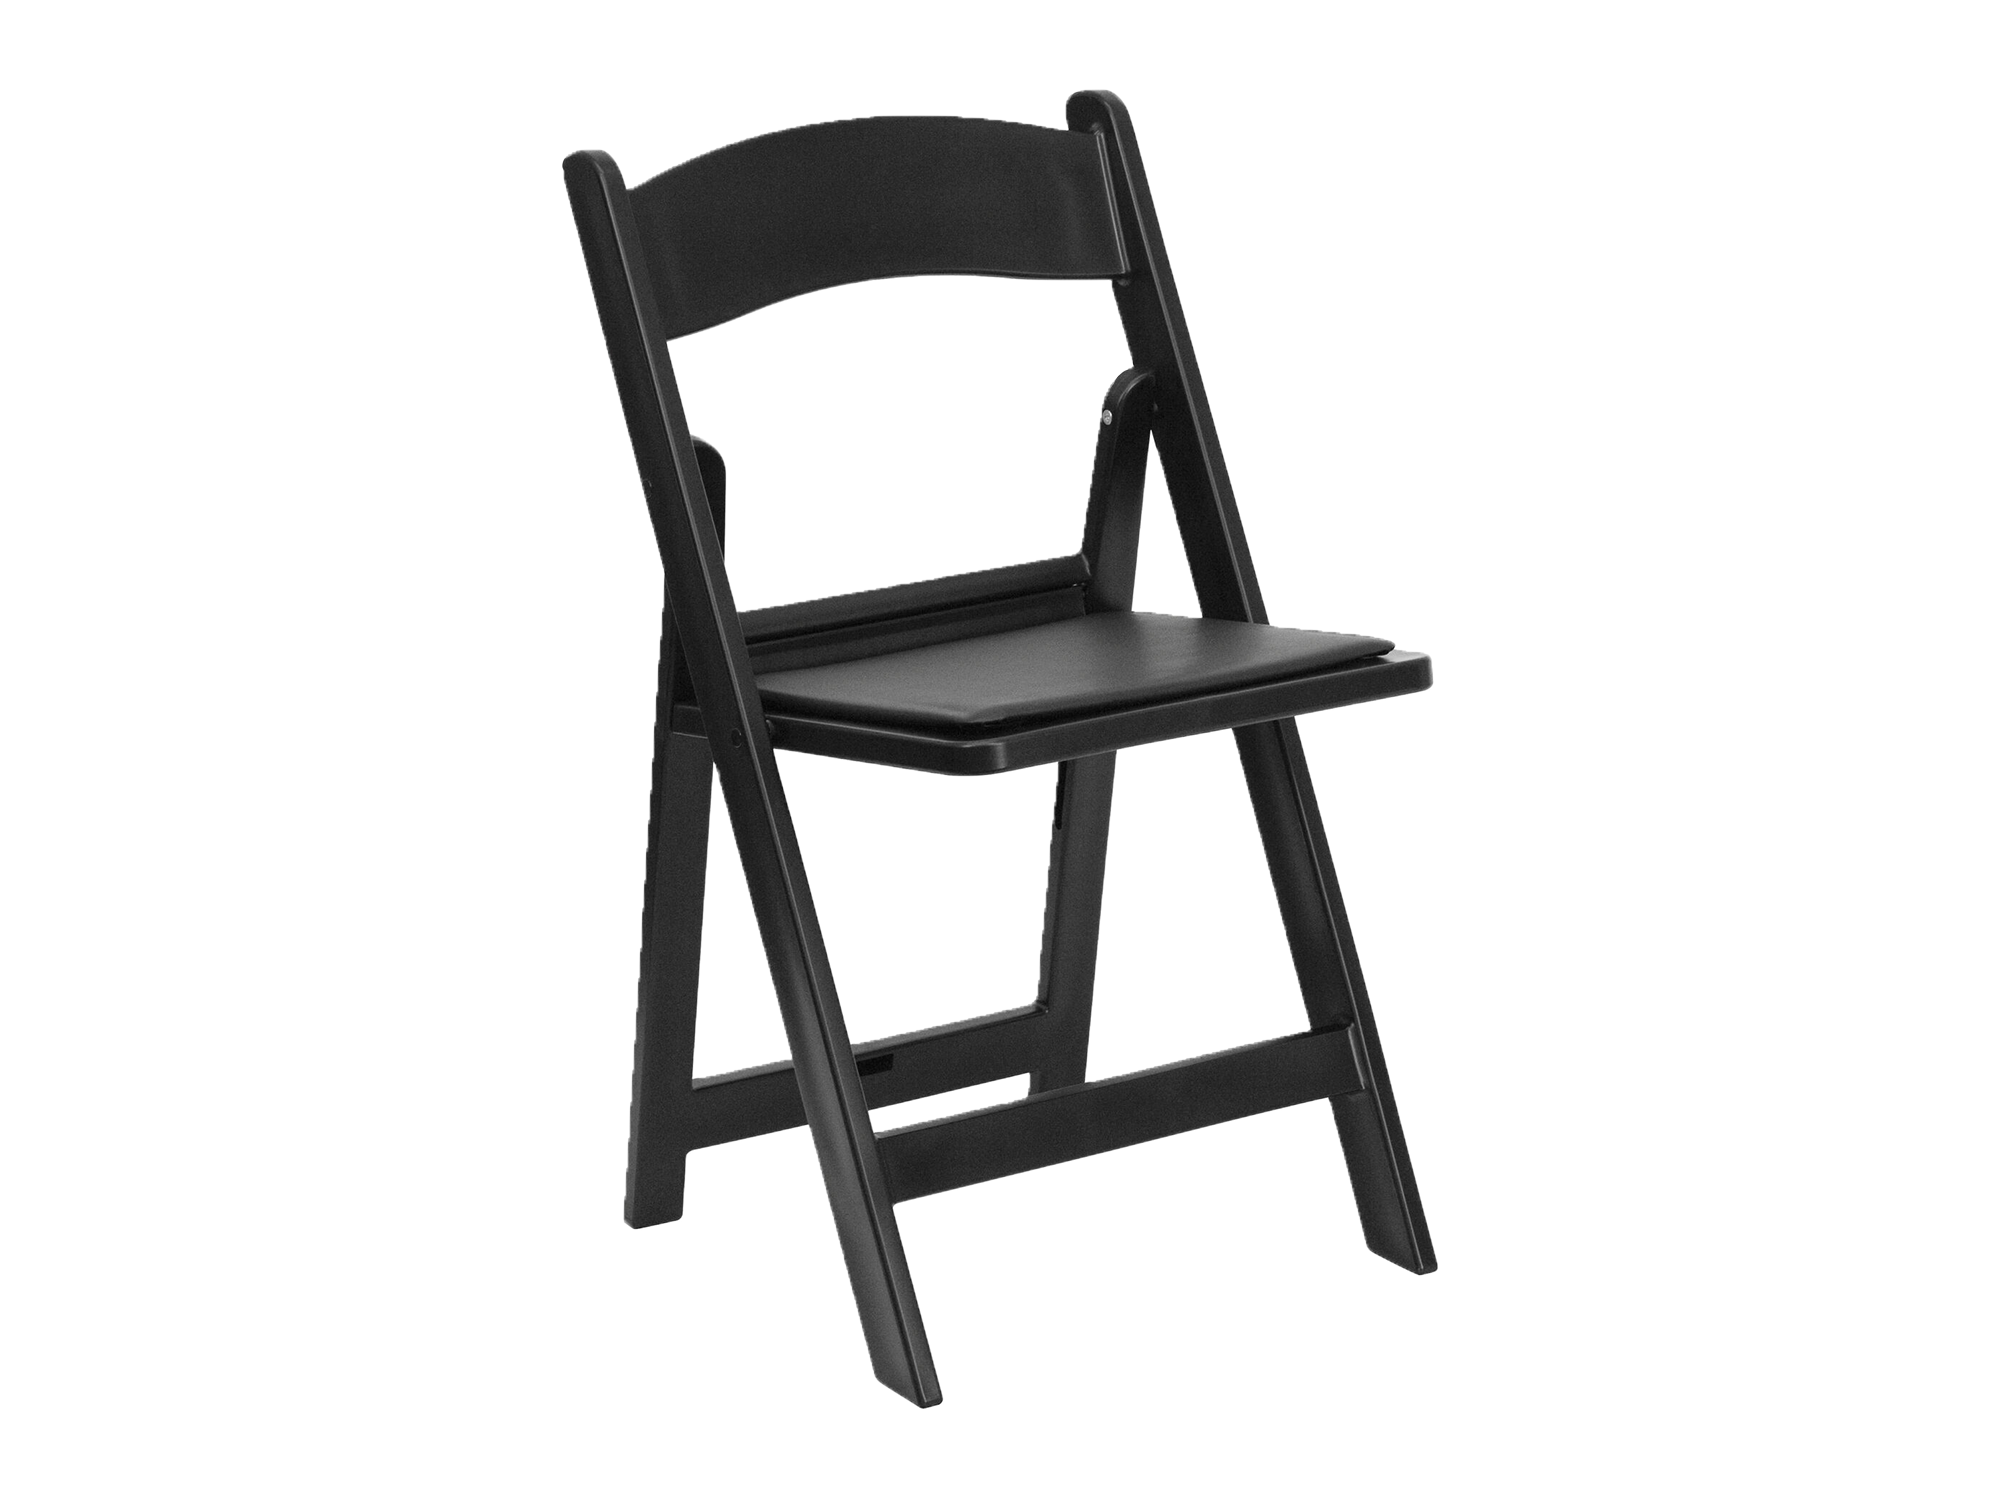 RESIN PADDED FOLDING CHAIR - BLACK